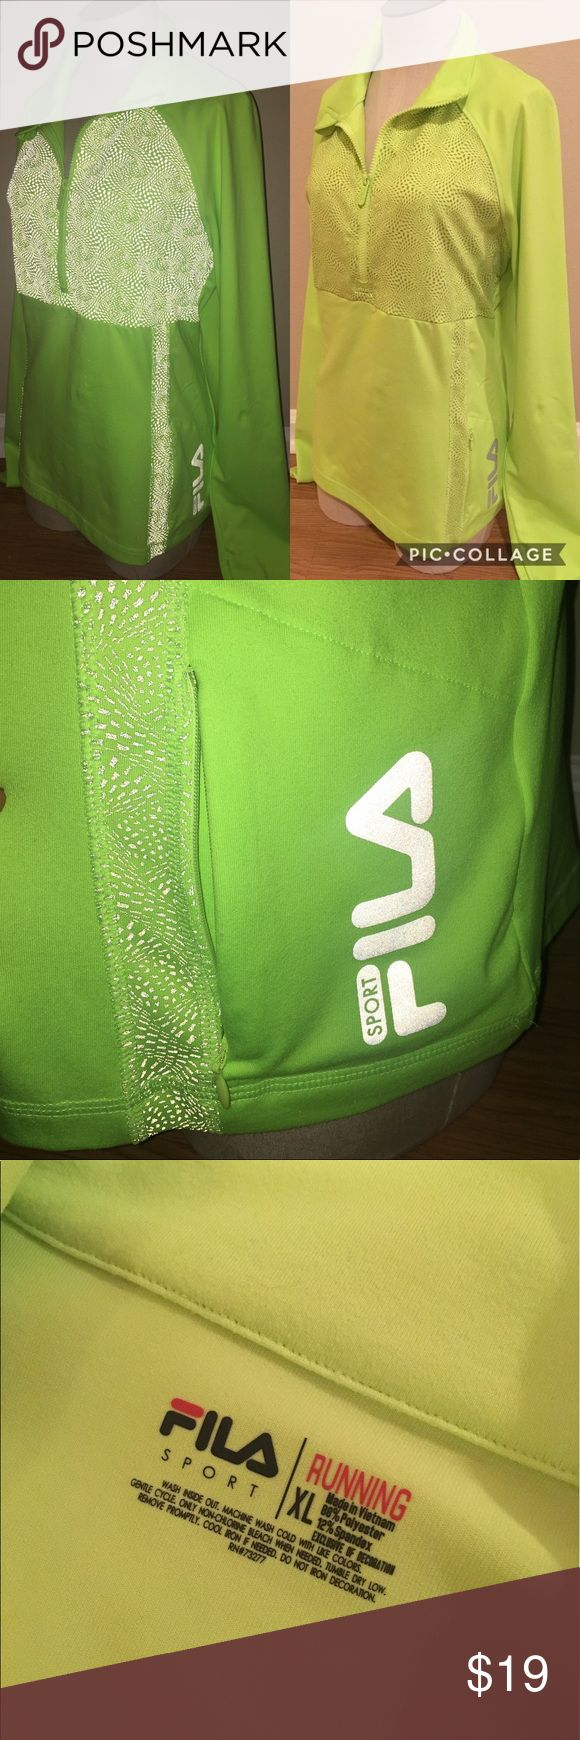 FILA SPORT Women's Lime Green Neon Running Jacket FILA Sport size XL. Women's Ladies long sleeve 1/2 zip exercise workout active athletic running jacket pullover.  Solid neon lime green with gray textured detail, thumb hole cuffs.  Mesh panels to keep you cool and flat seams to minimize irritation.  Zip media front pocket, reflective logos on the back, super stretch.  Made of 88% polyester and 12% spandex.  Machine washable. NEVER WORN. Fila Tops